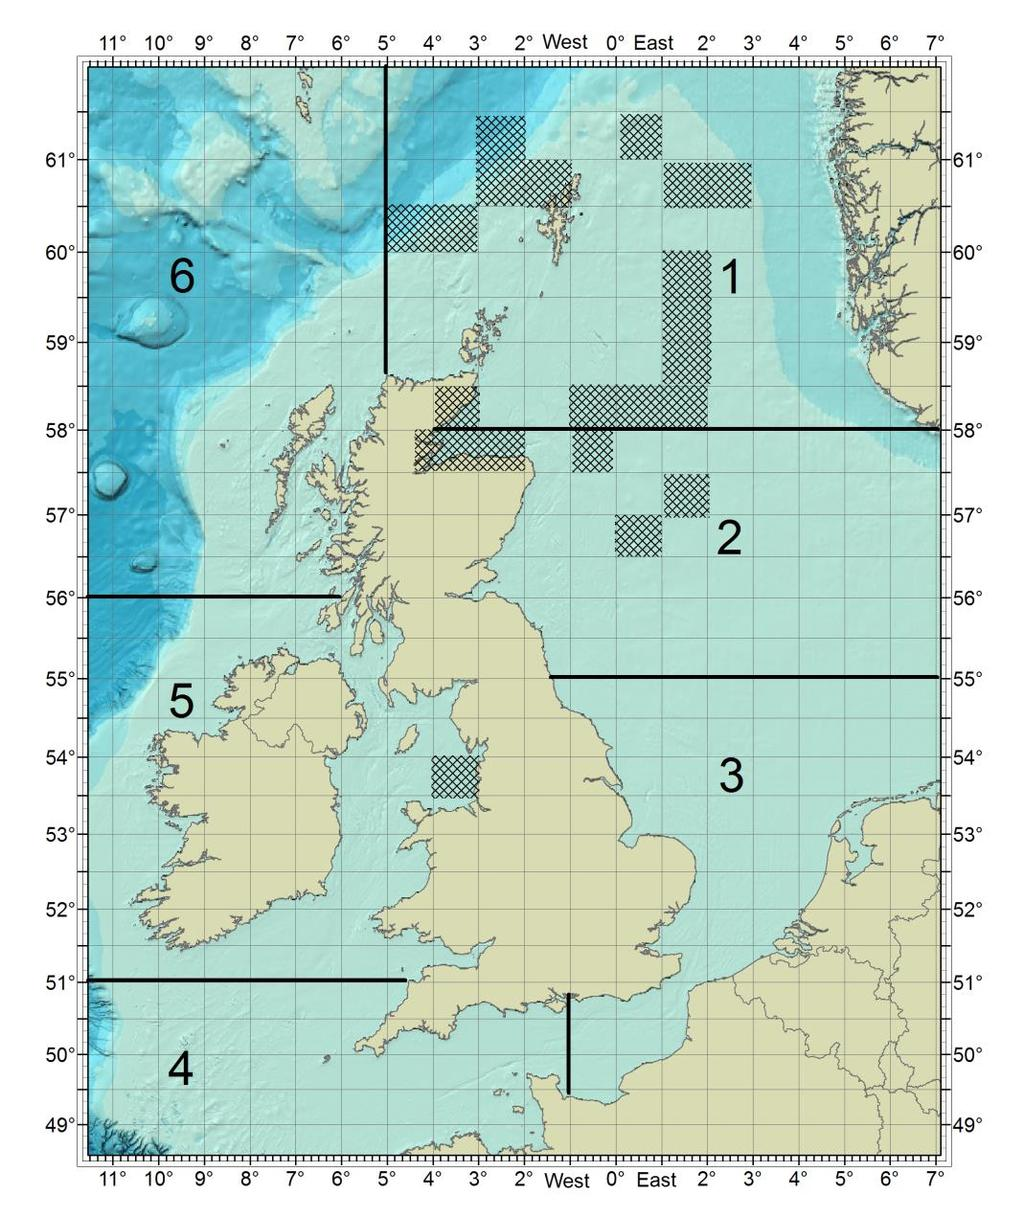 For live Kingfisher updates of offshore activities, visit www.fishsafe.eu and follow @KingfisherInfo on Twitter The shaded blocks below indicate reports of fishing hazards and offshore activities.